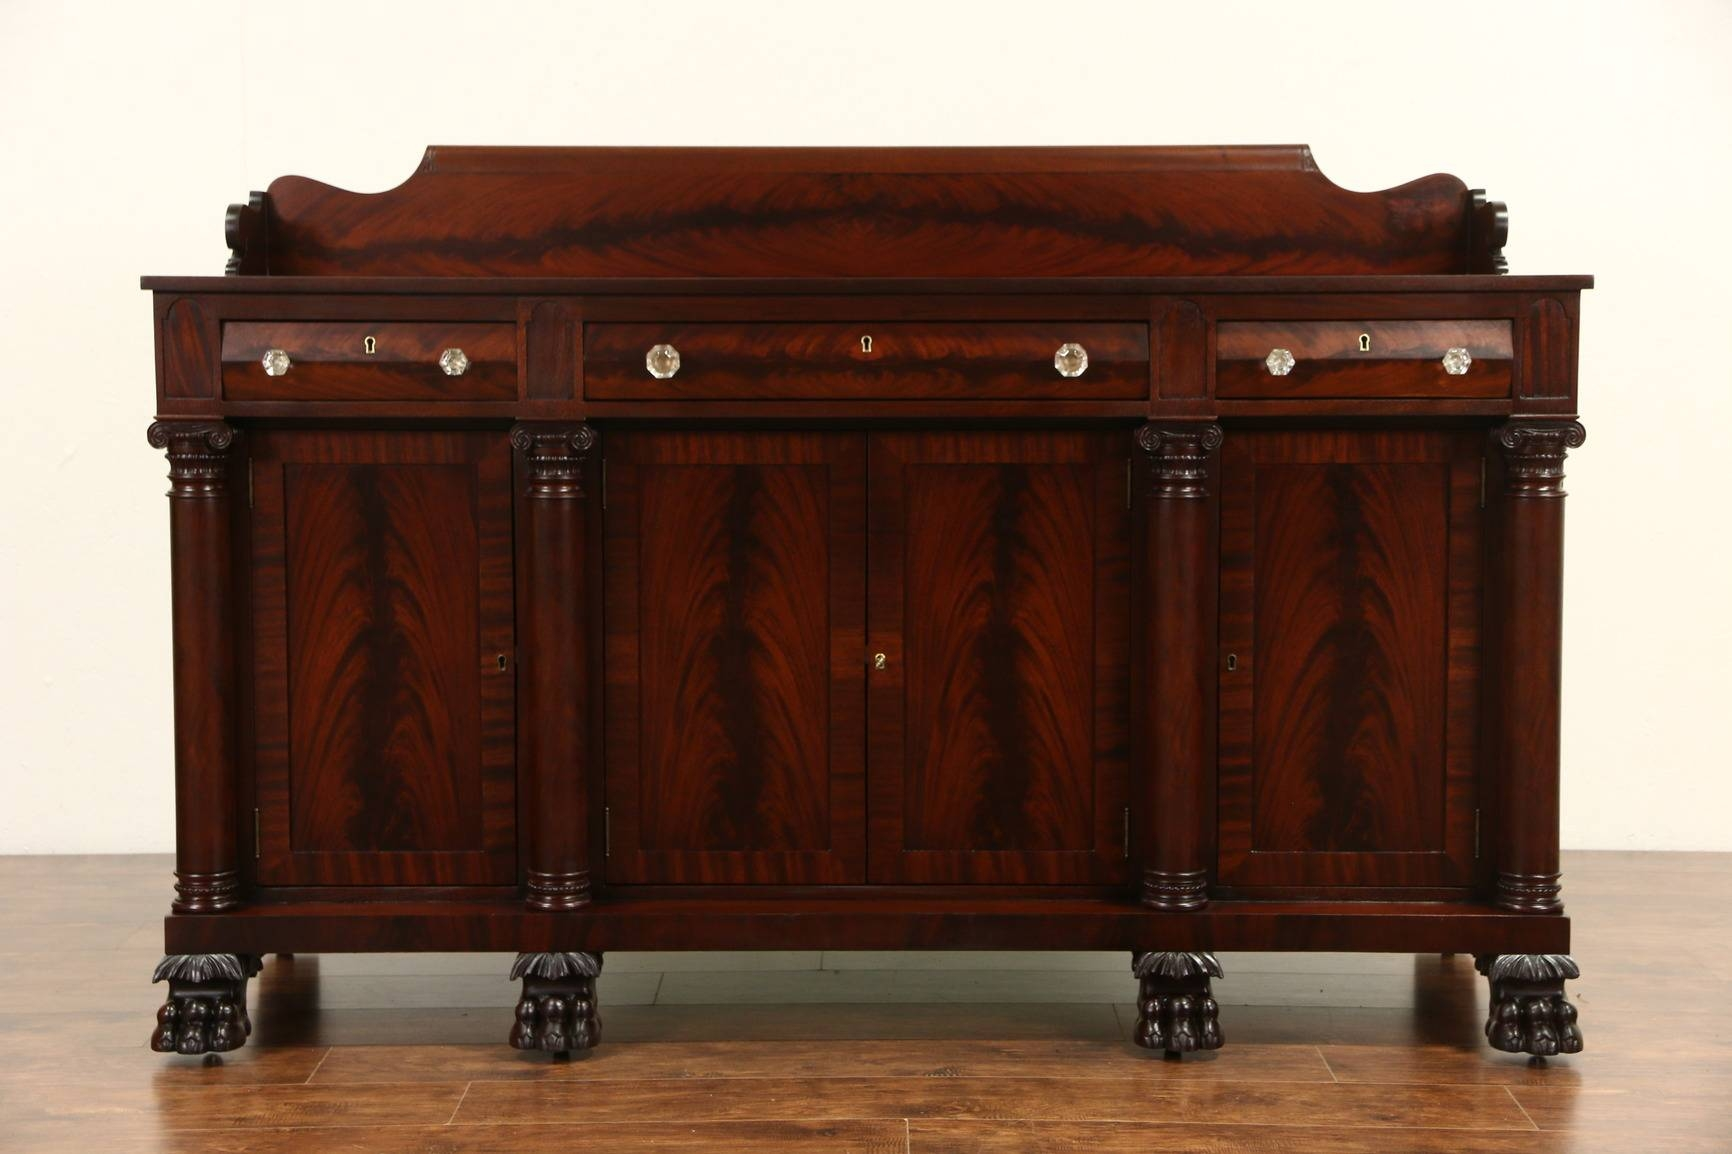 Sold - Empire Carved Mahogany 1900 Antique Sideboard, Server Or intended for Antique Sideboard Buffets (Image 11 of 15)